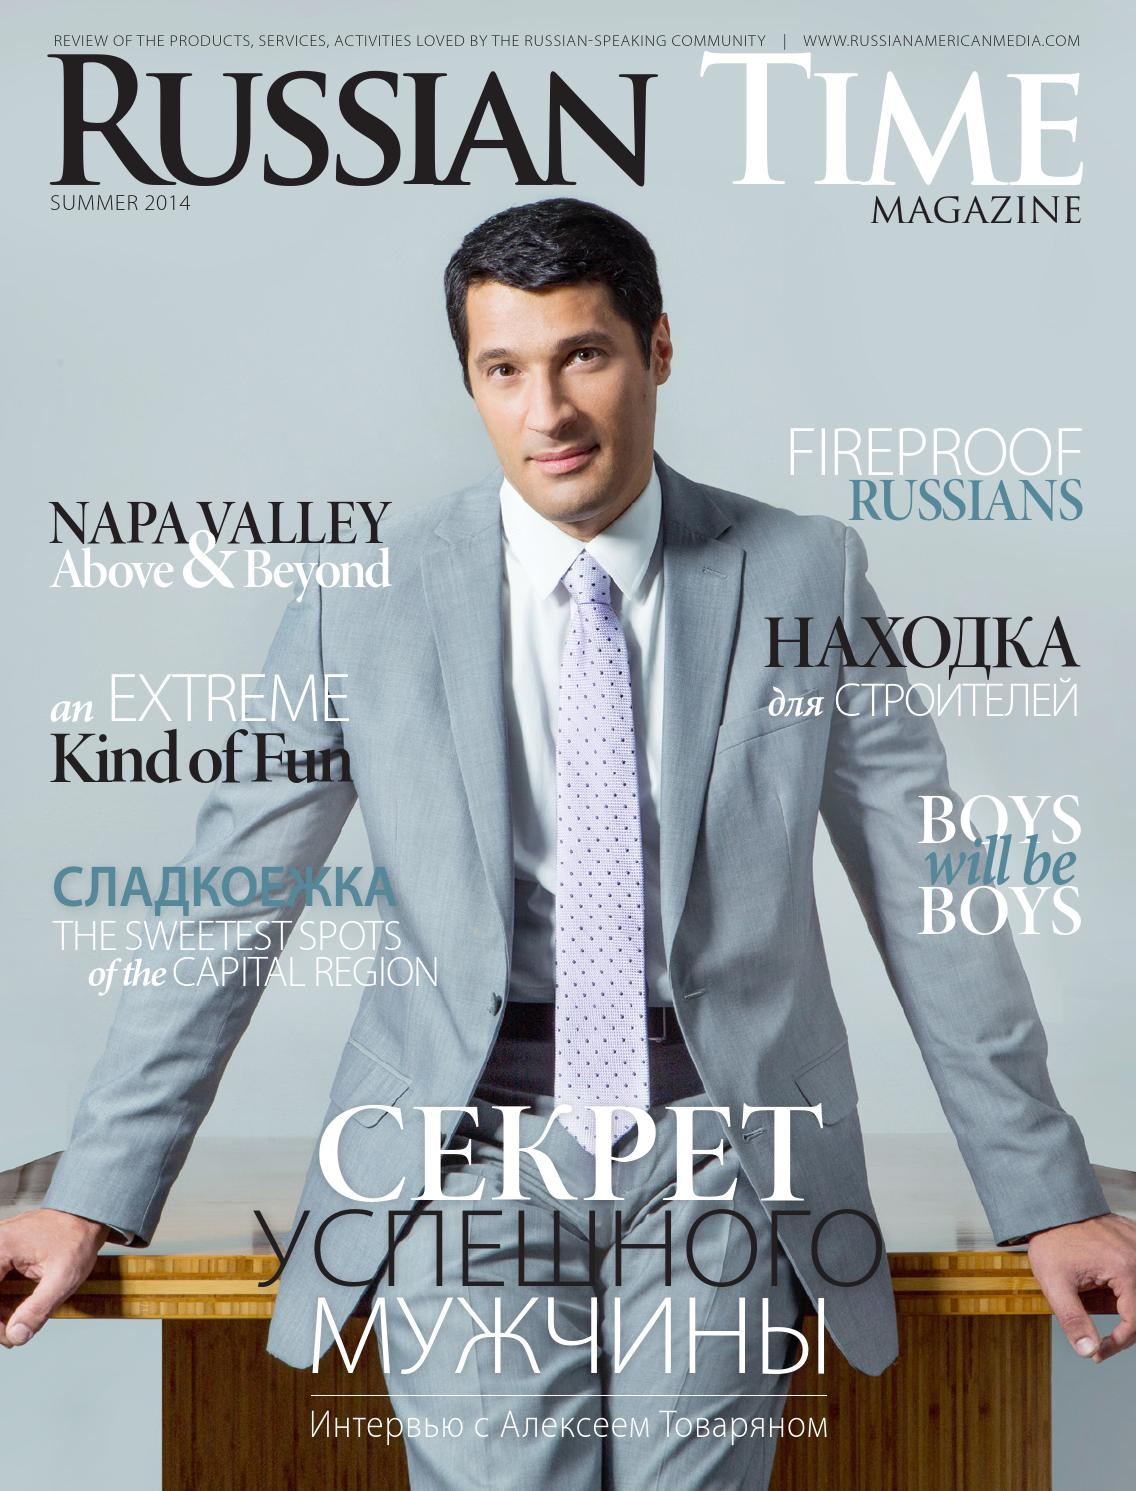 Russian Time Magazine Summer 2014 by Russian American Media - issuu